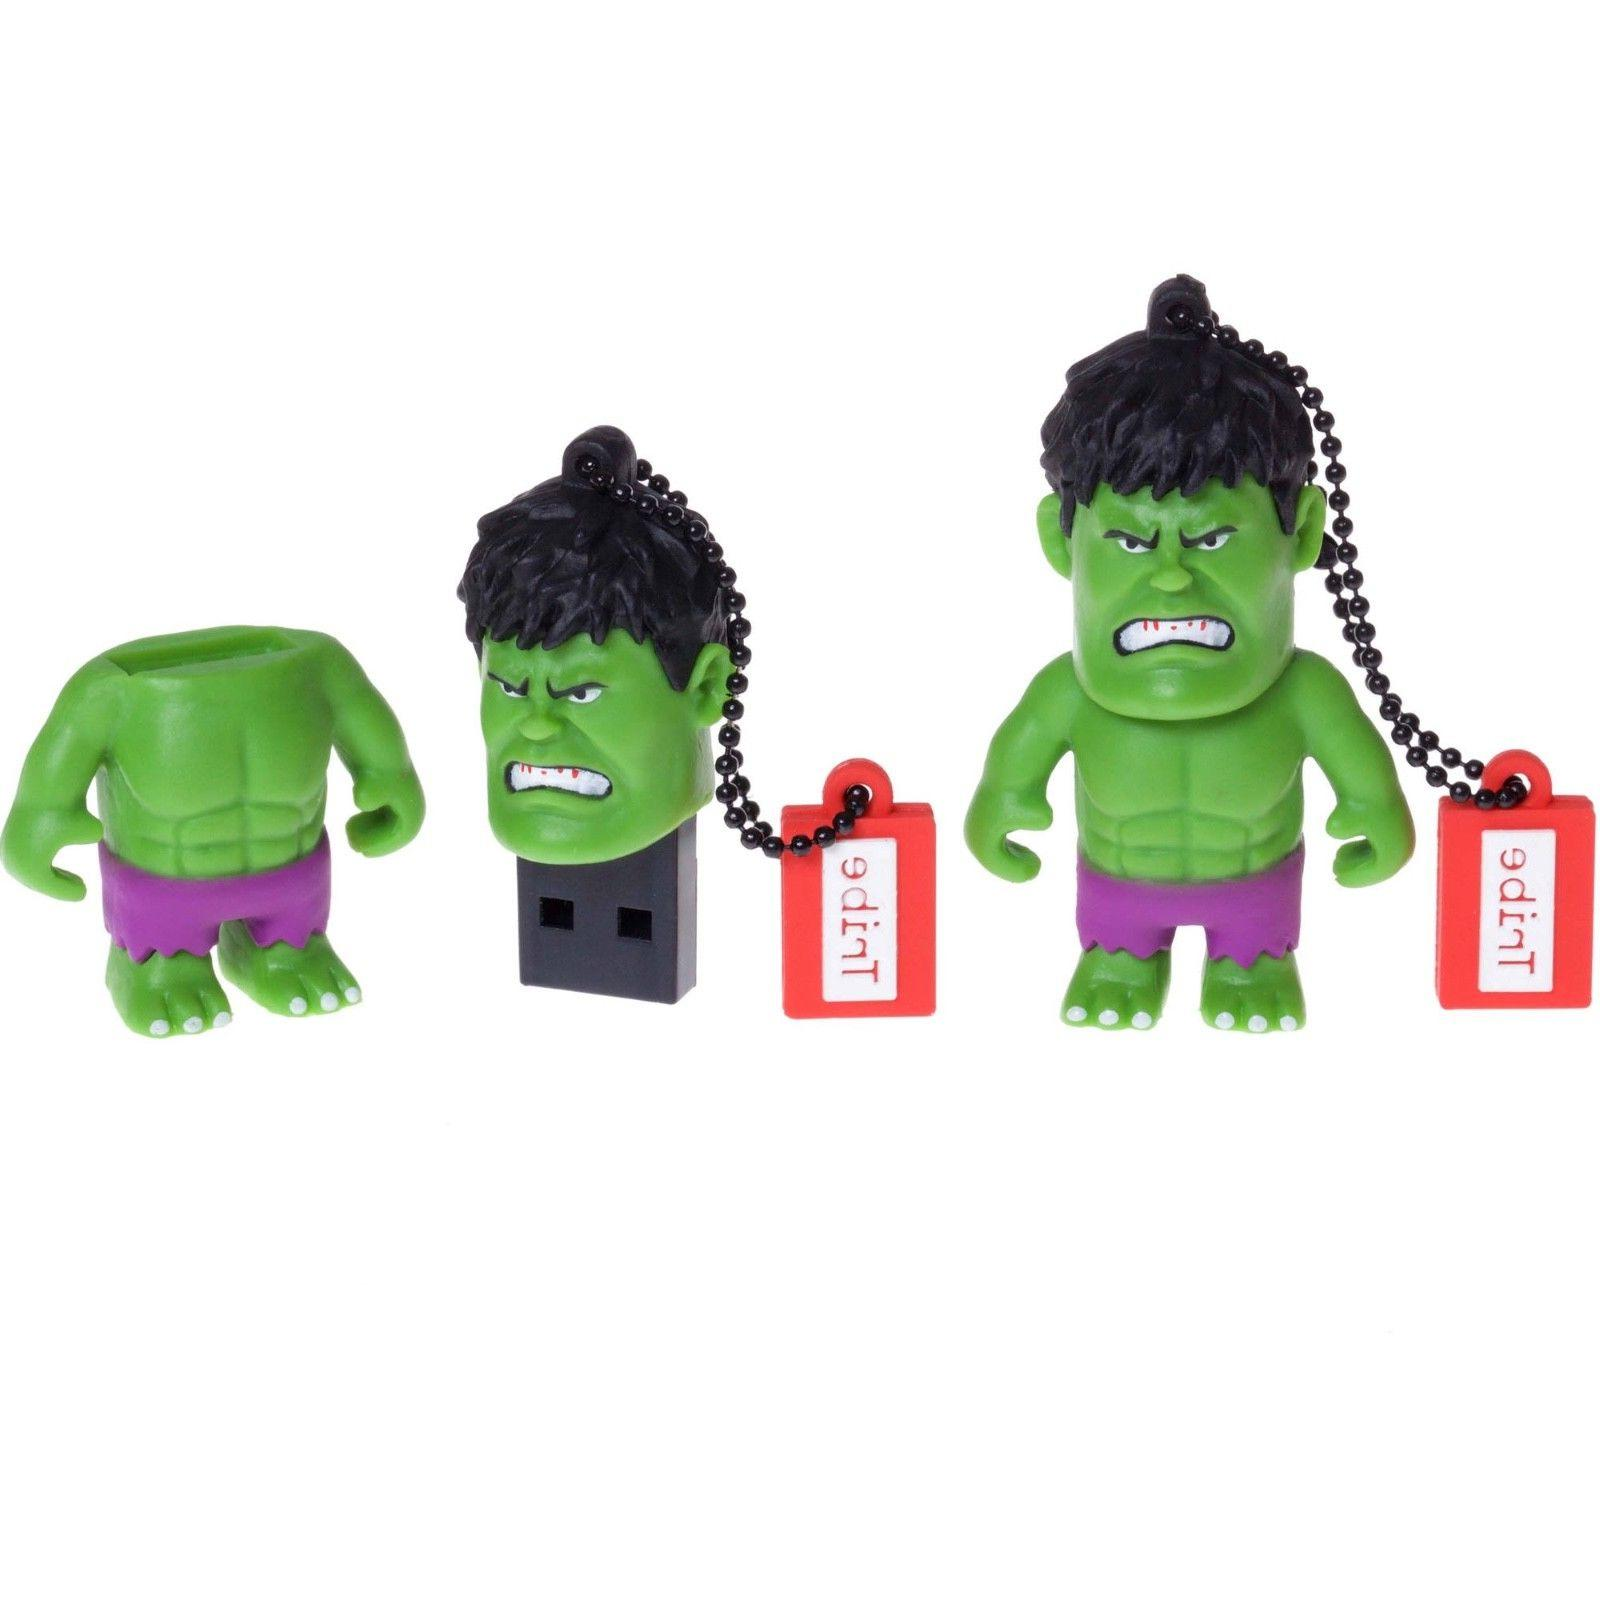 16GB Hulk USB Flash Drive